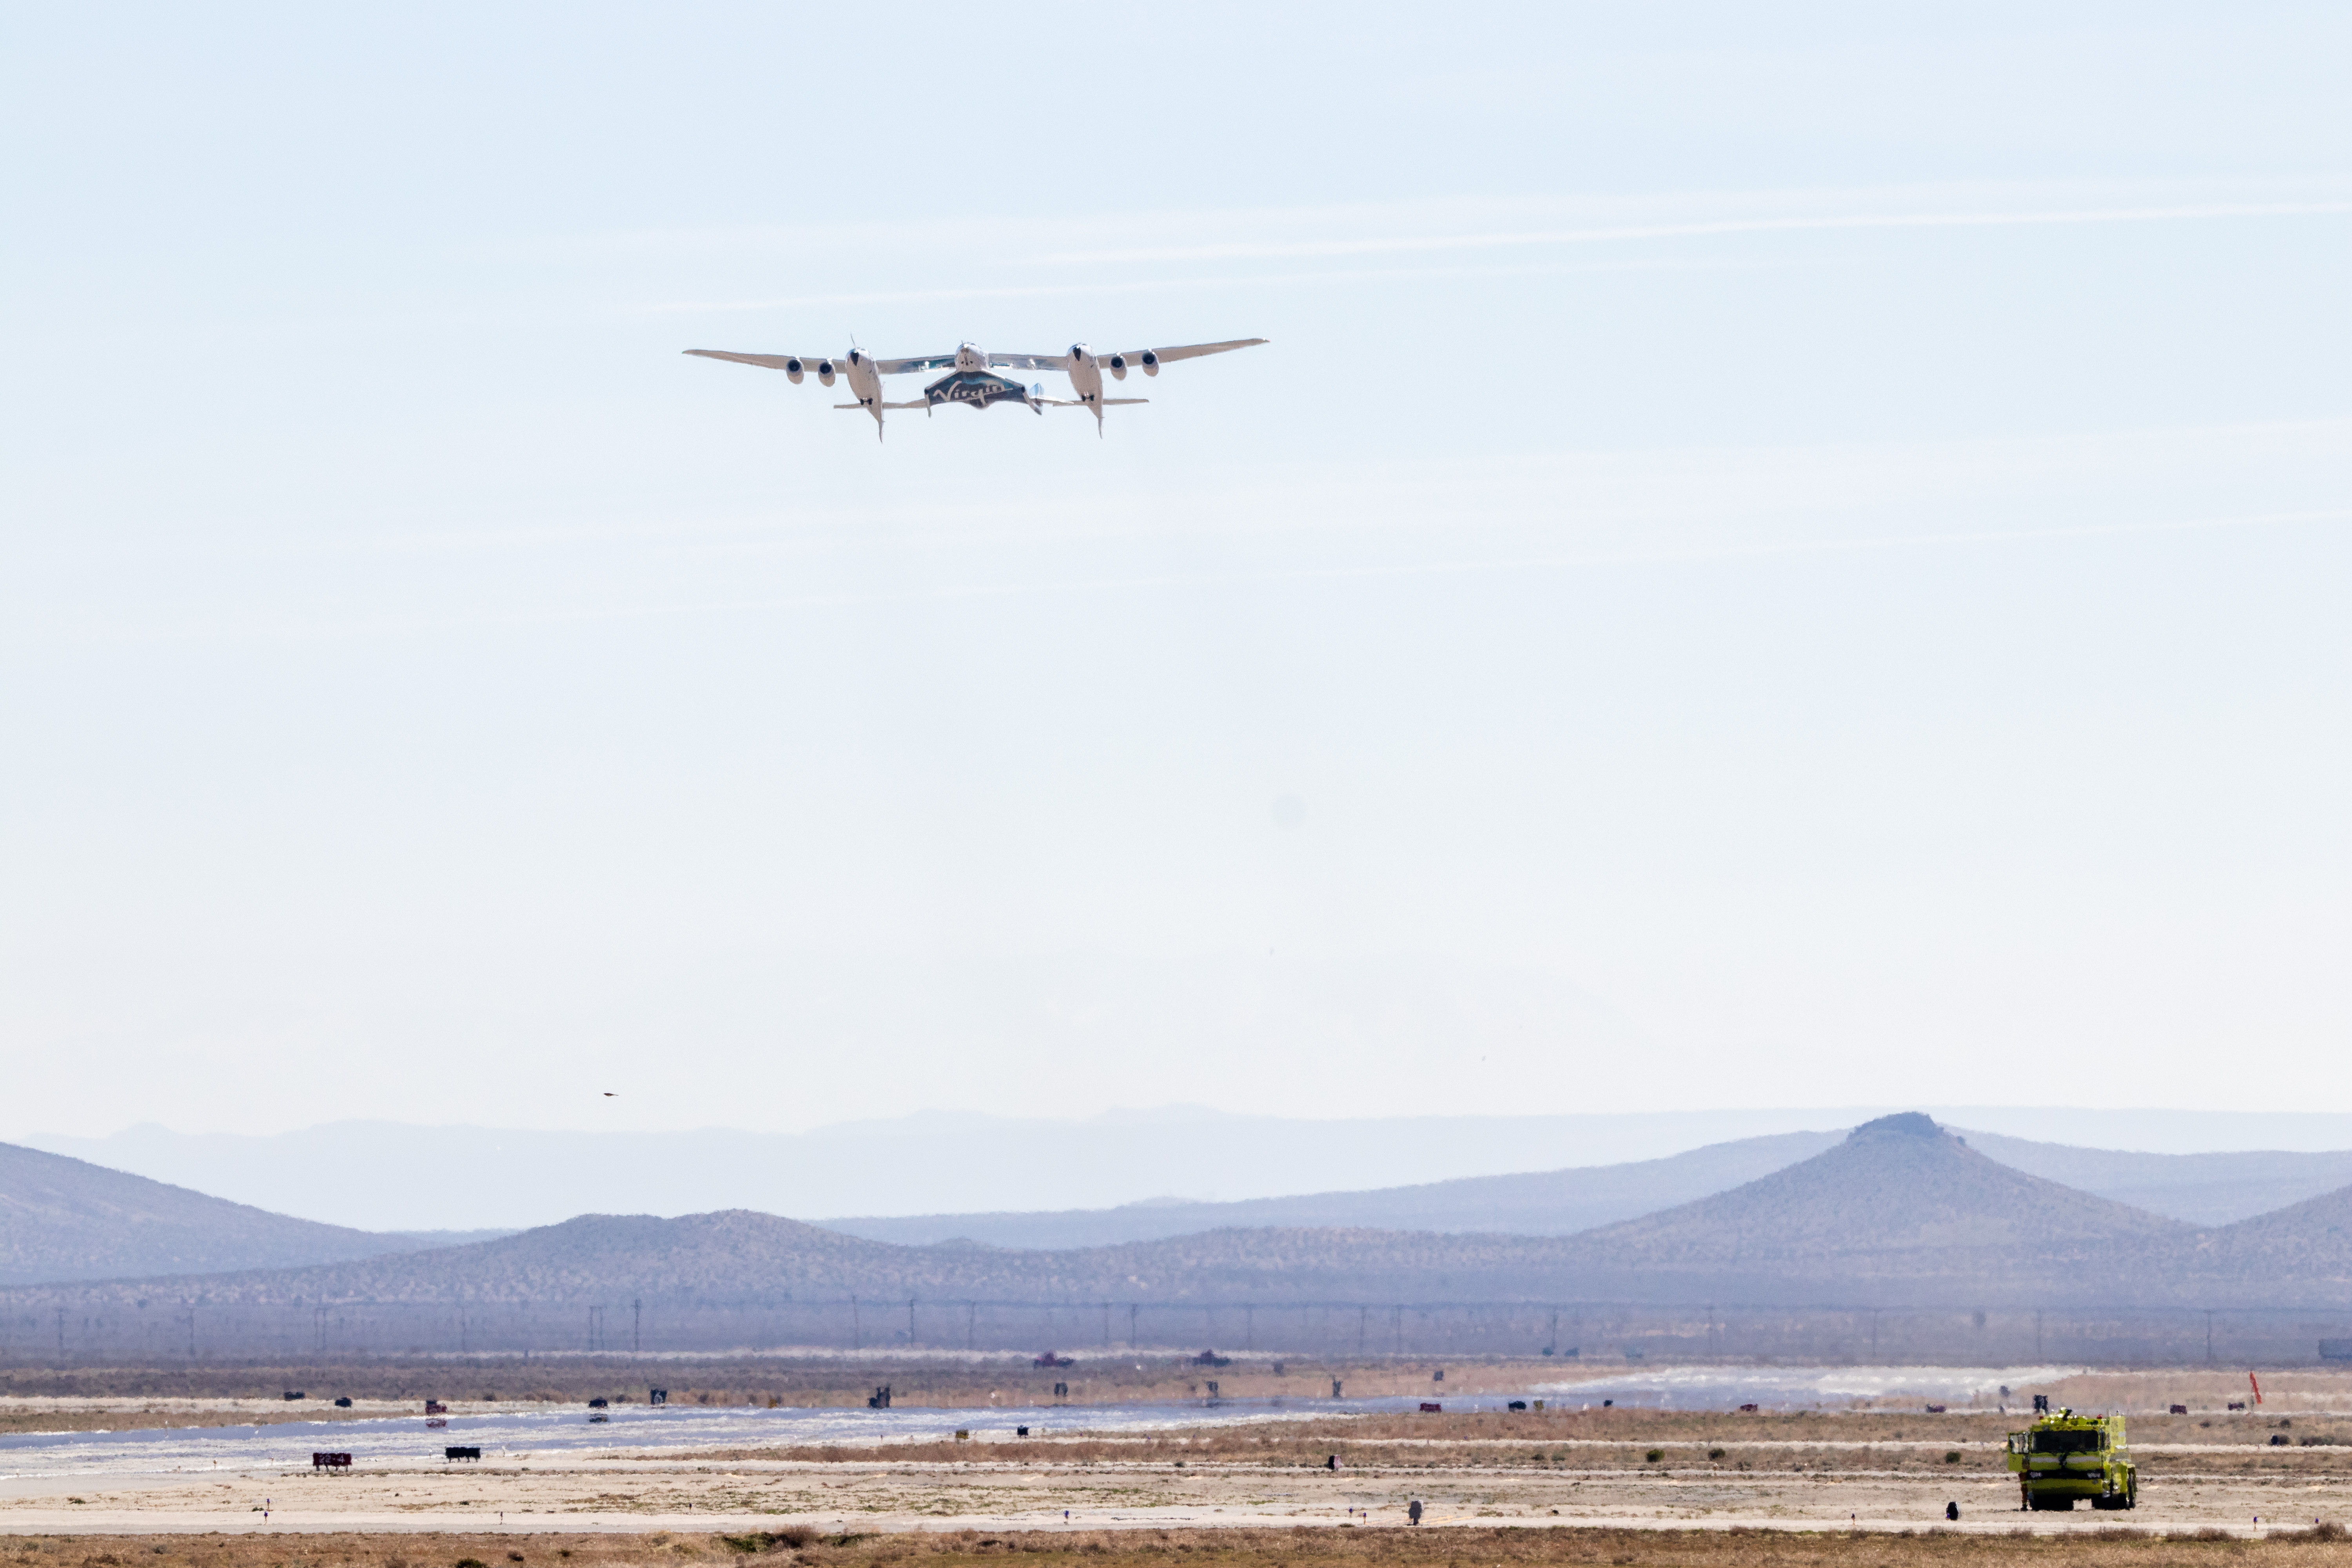 VSS Unity Arrives at Spaceport America for Commercial Operations